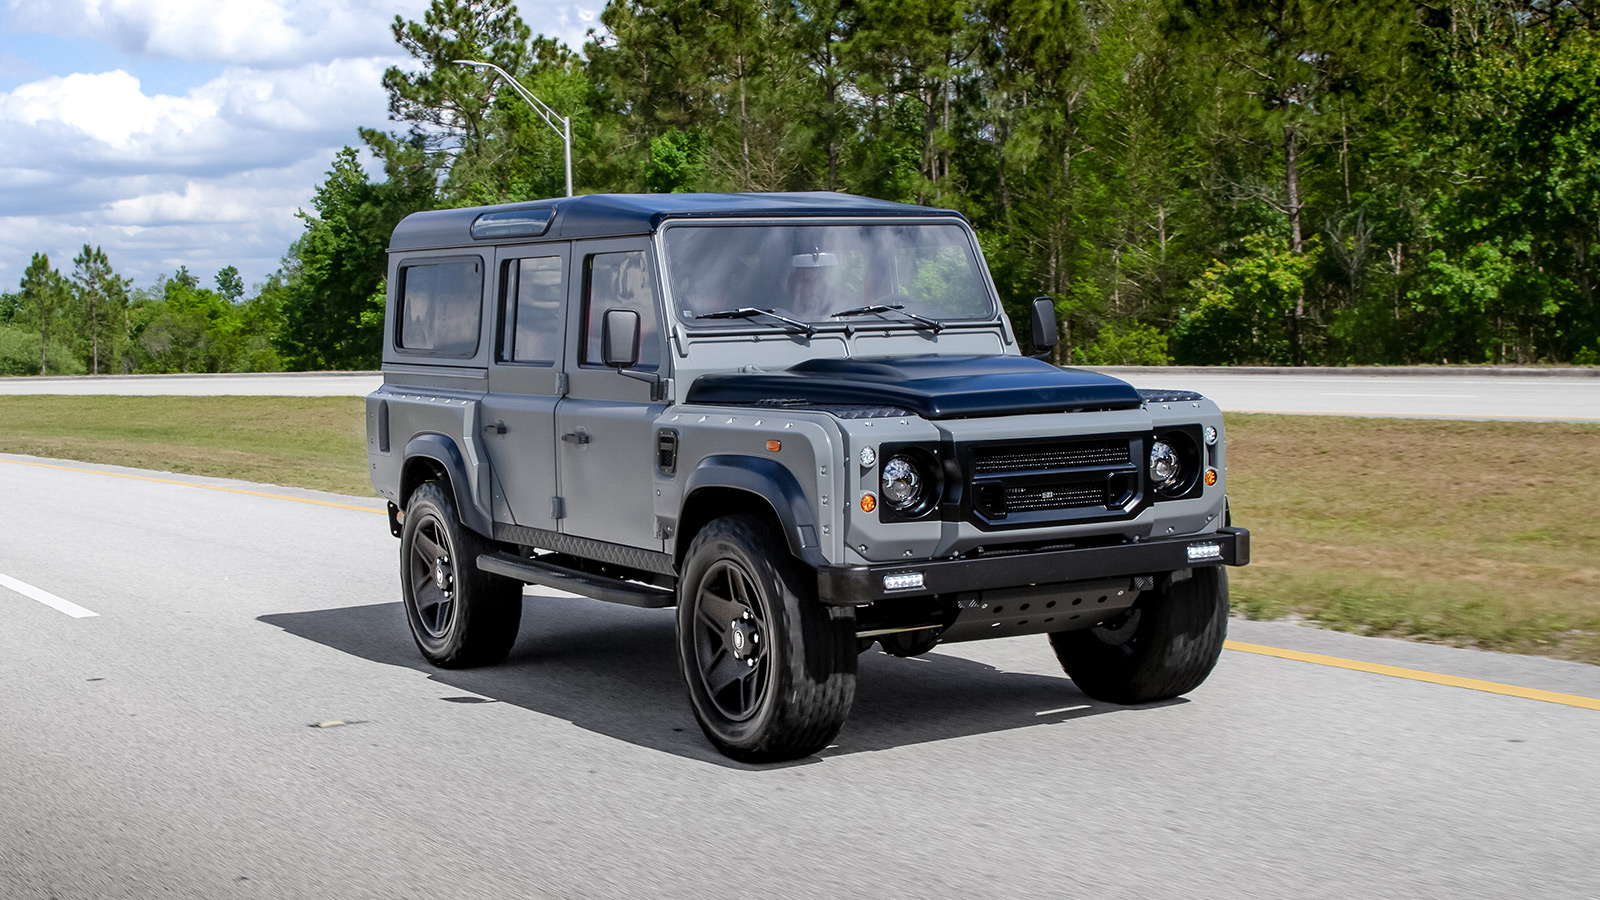 ECD Project Soho Land Rover Defender